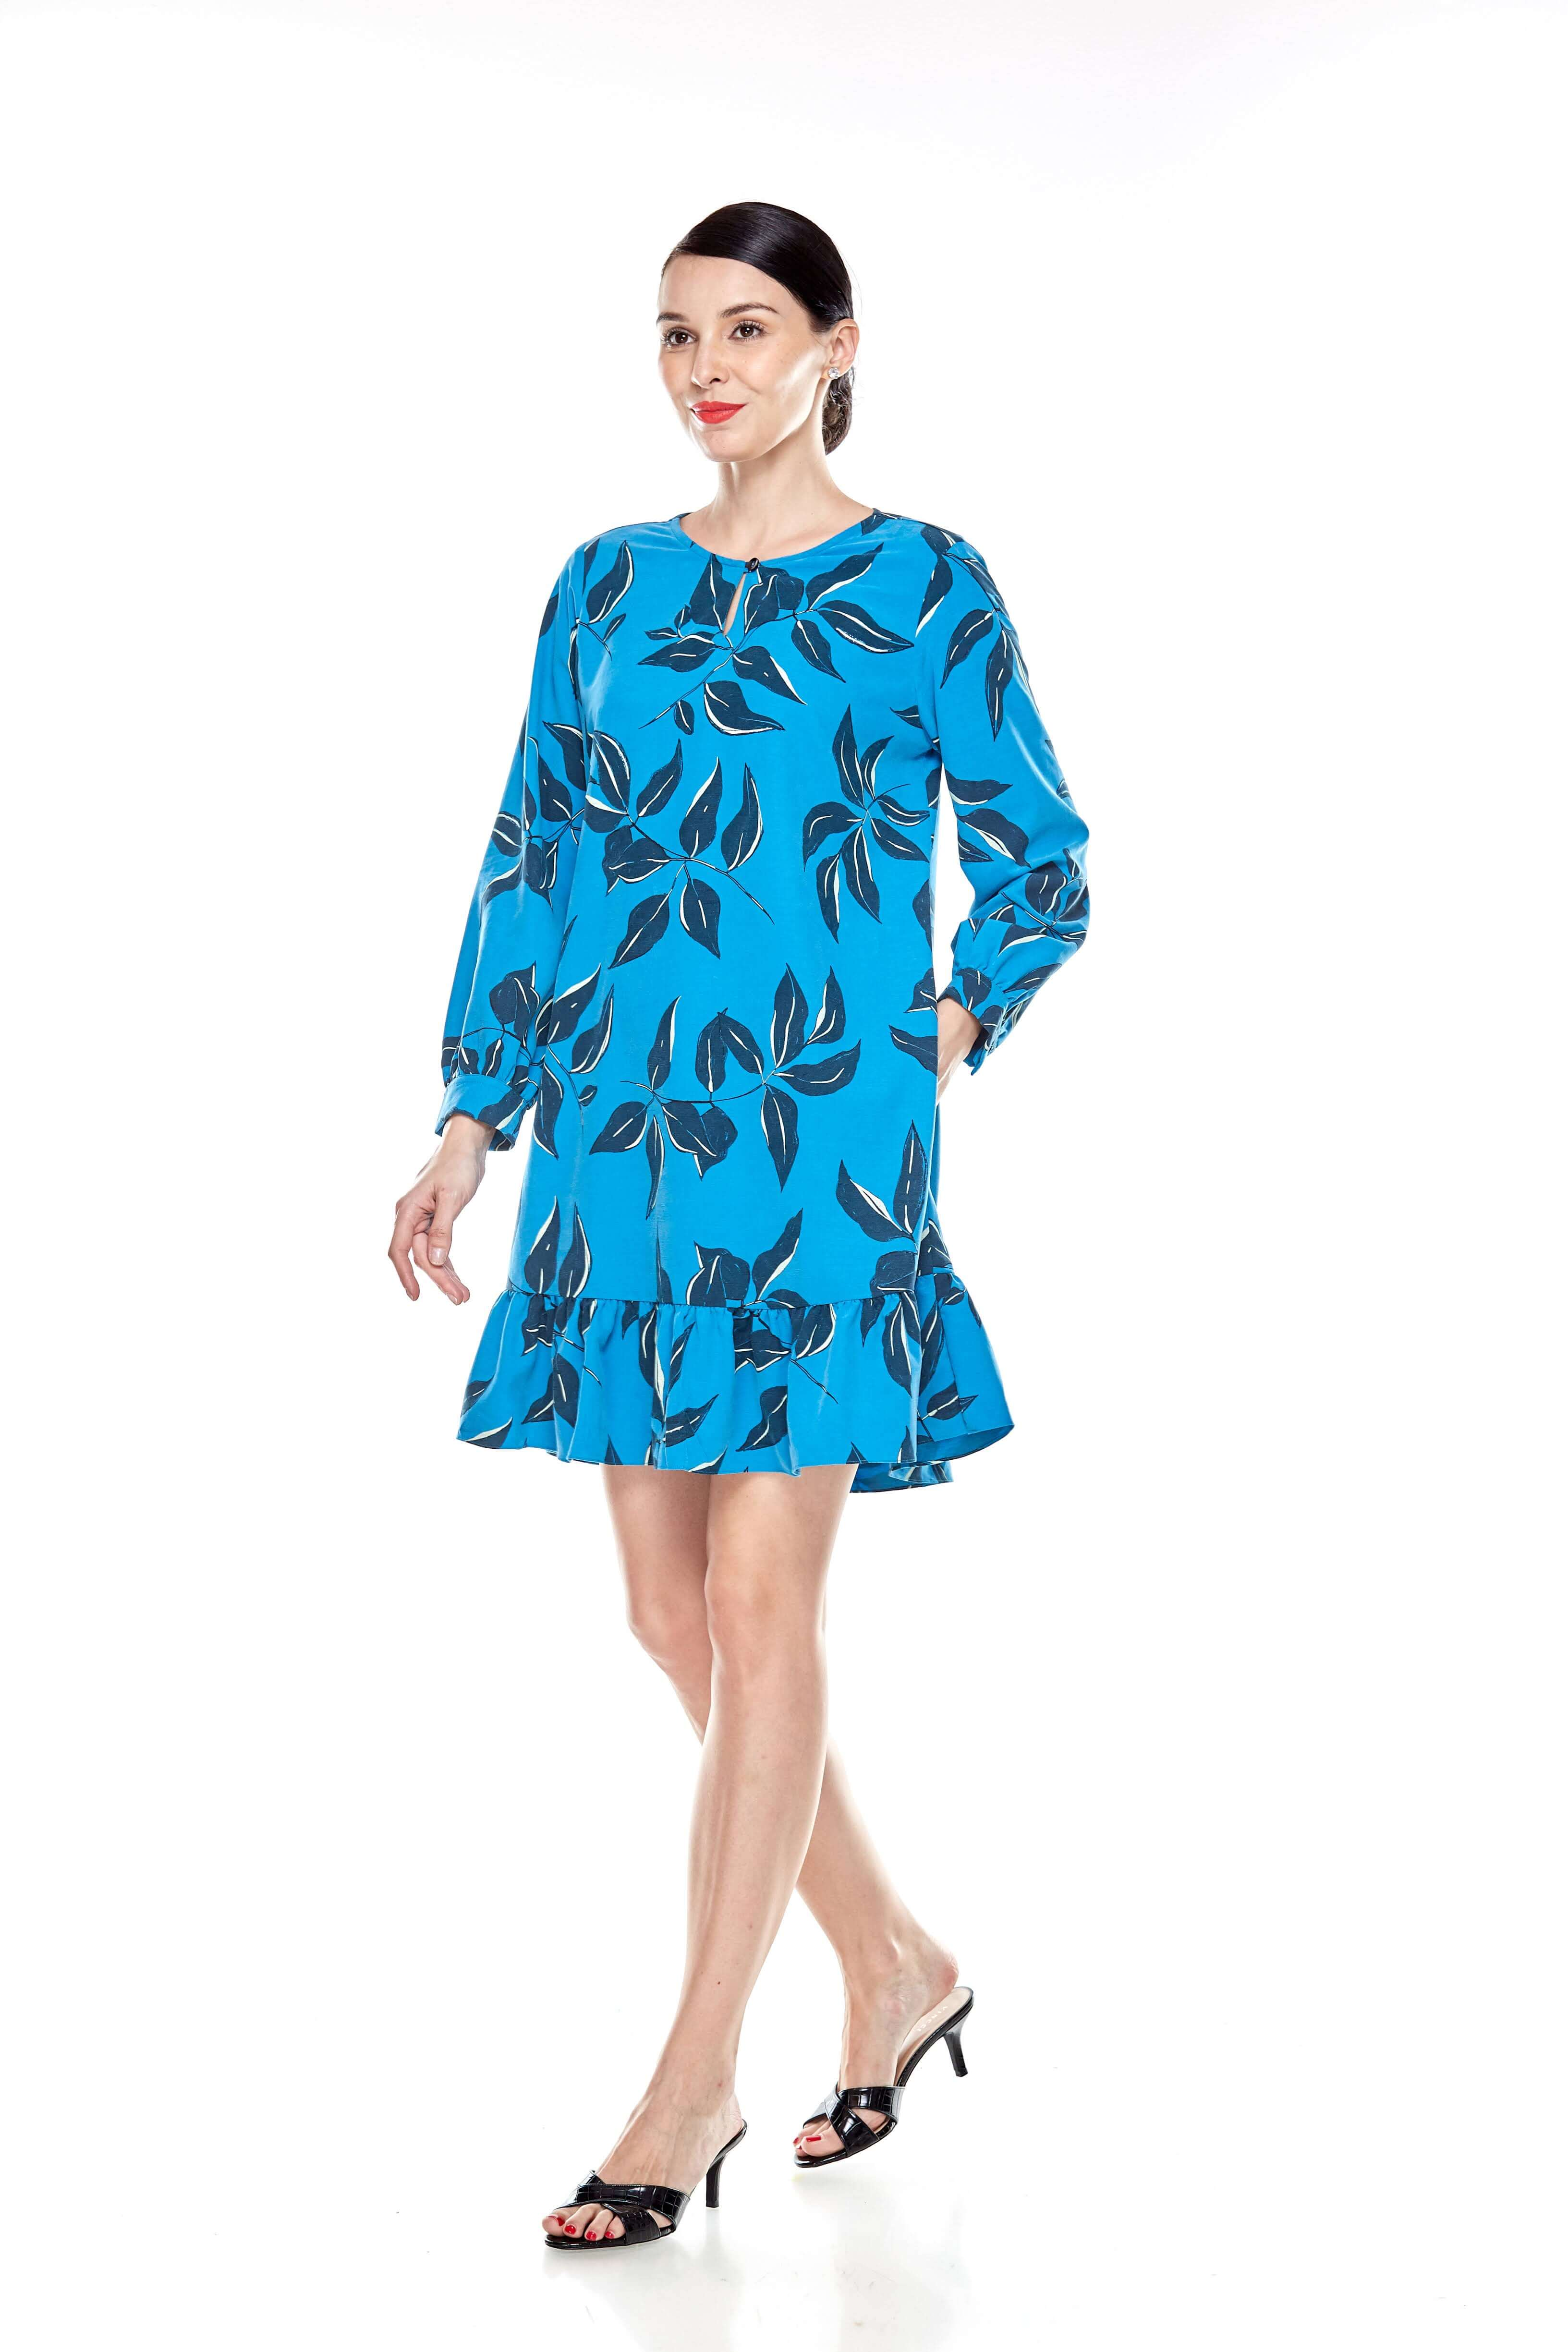 Mosaic Blue Printed Tunic With Bow Sleeves (11)